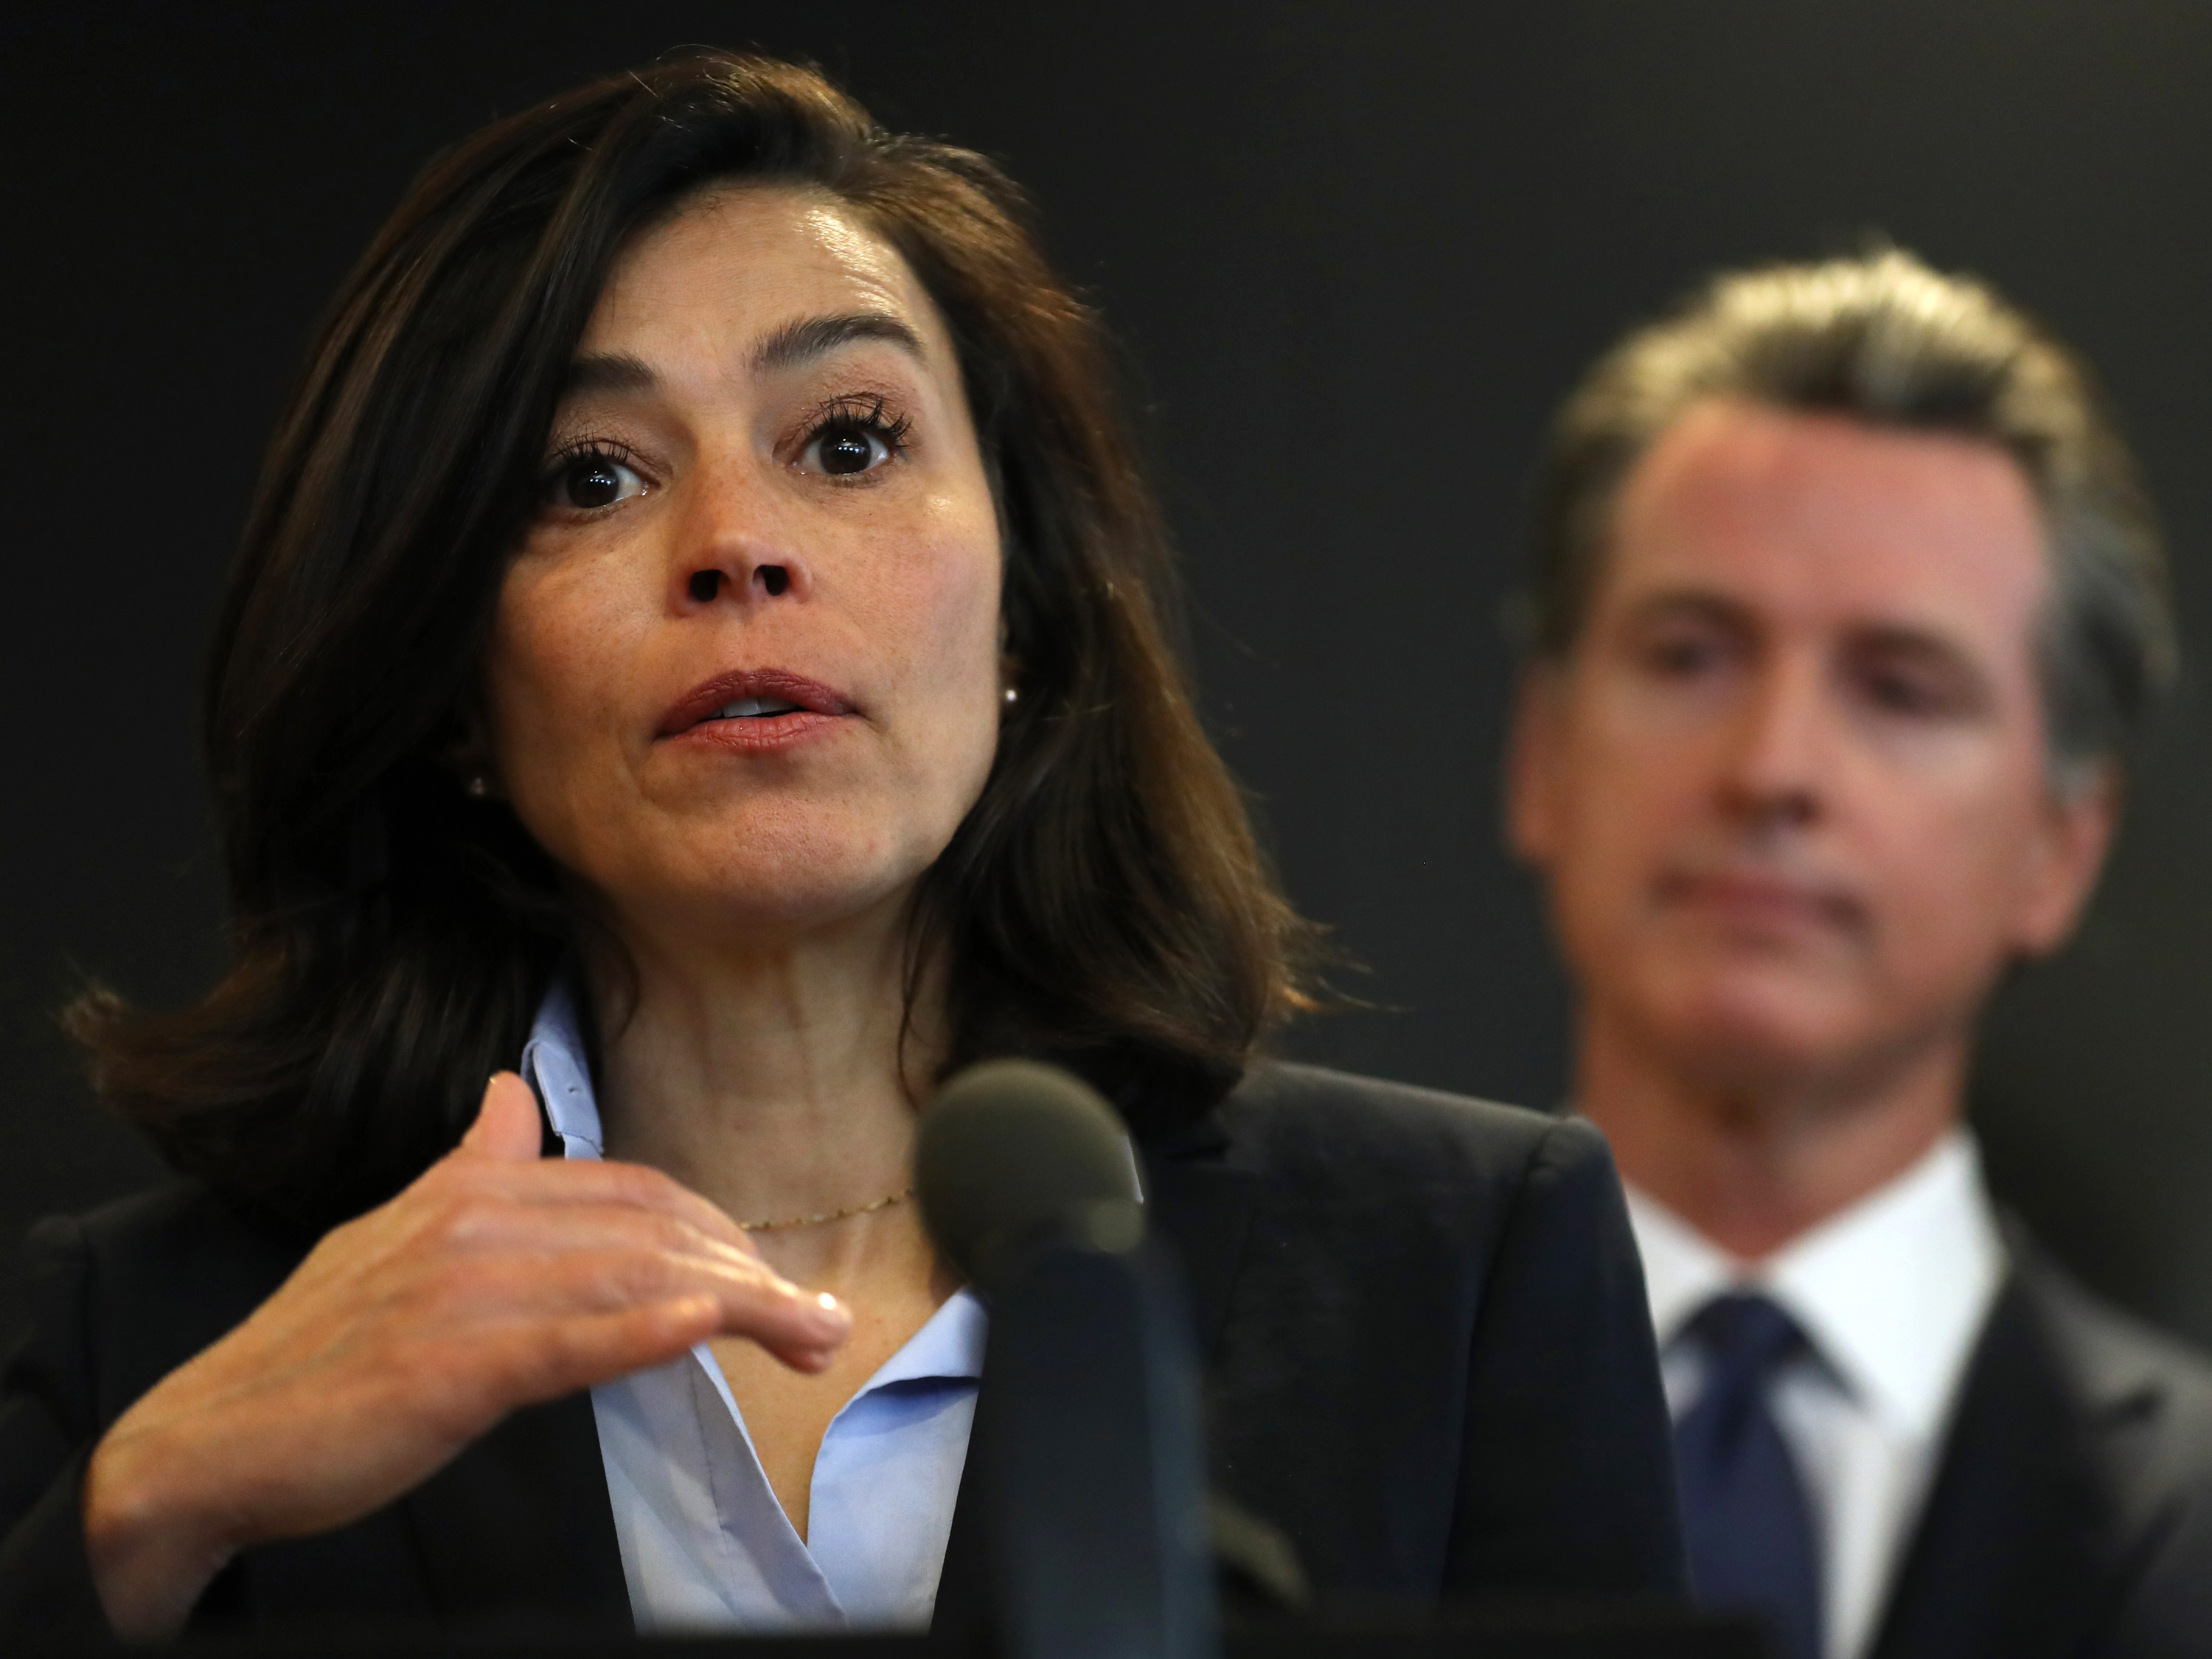 Former California Department of Public Health Director and State Health Officer Dr. Sonia Angell speaks during a news conference at the California Department of Public Health on February 27 in Sacramento, California.